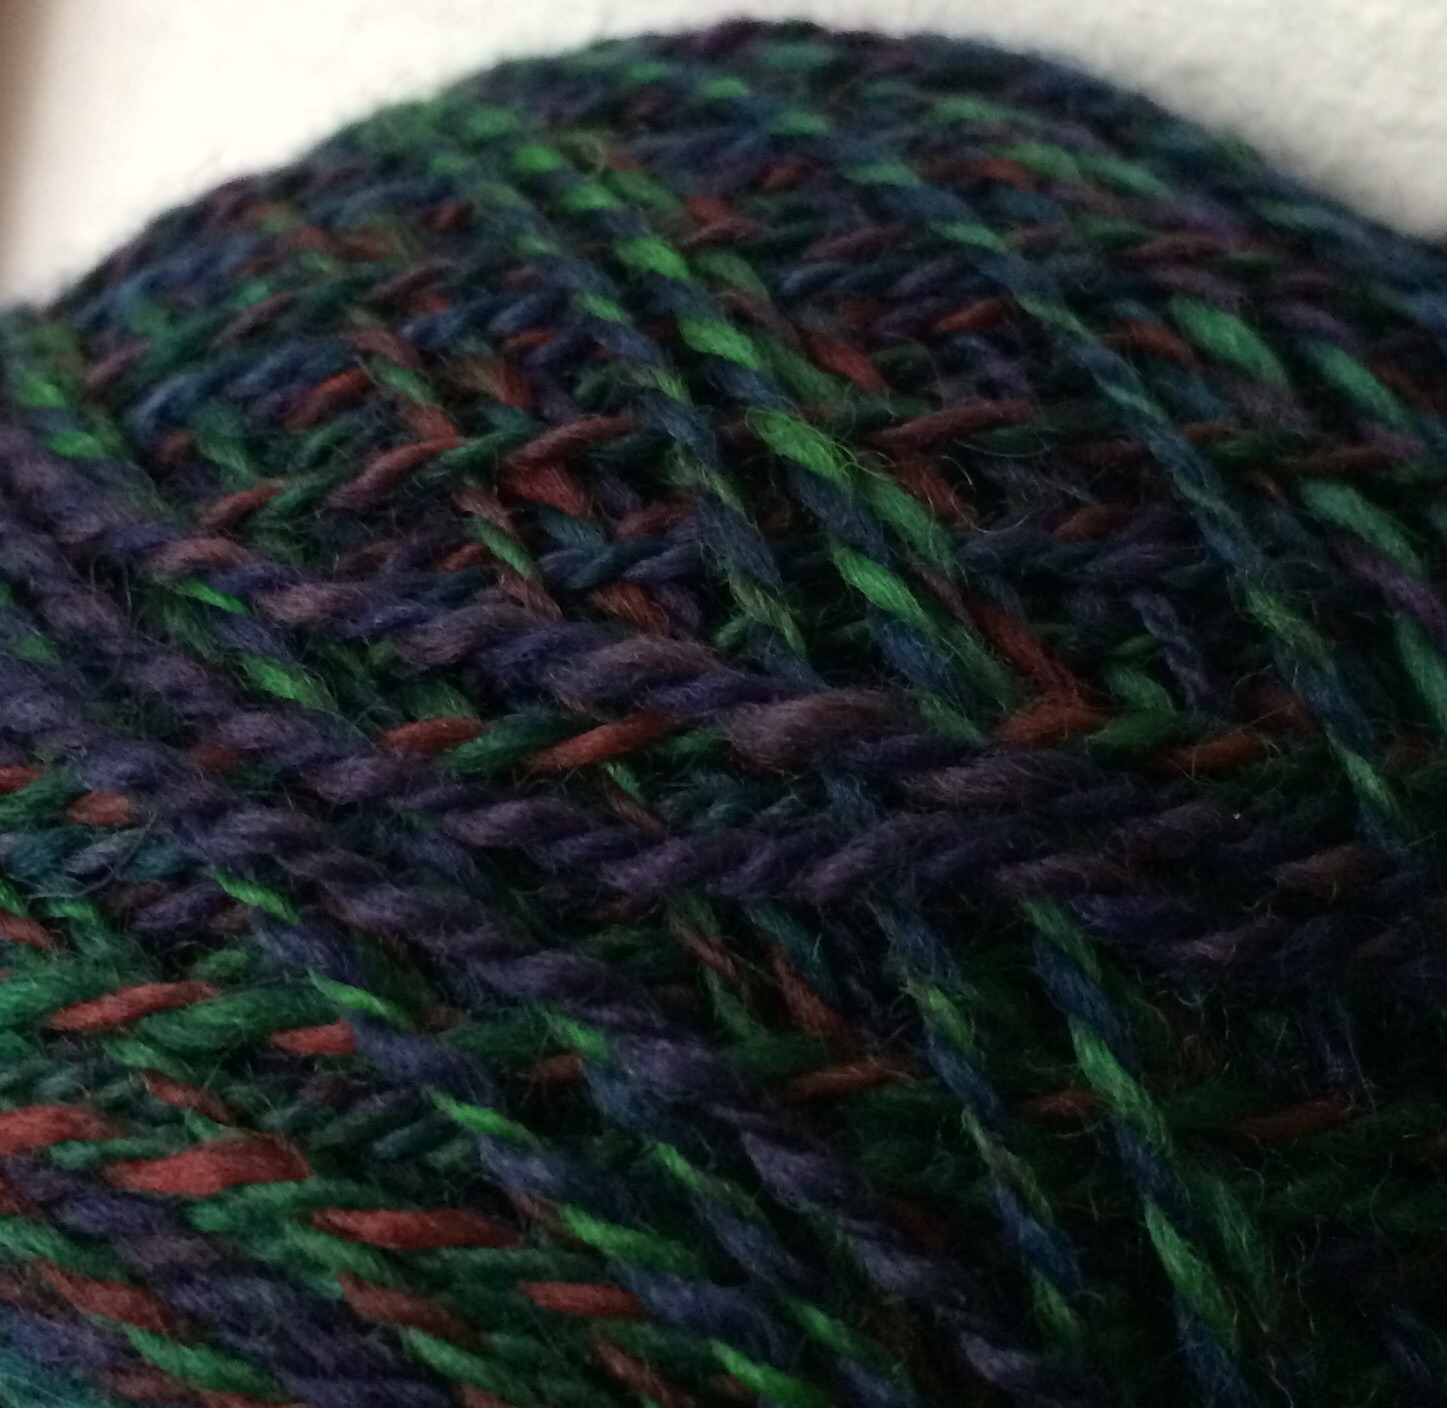 It's a BFL 2-ply by Sandi Spins. I don't think she has a website, so if you'd like contact info, email me!